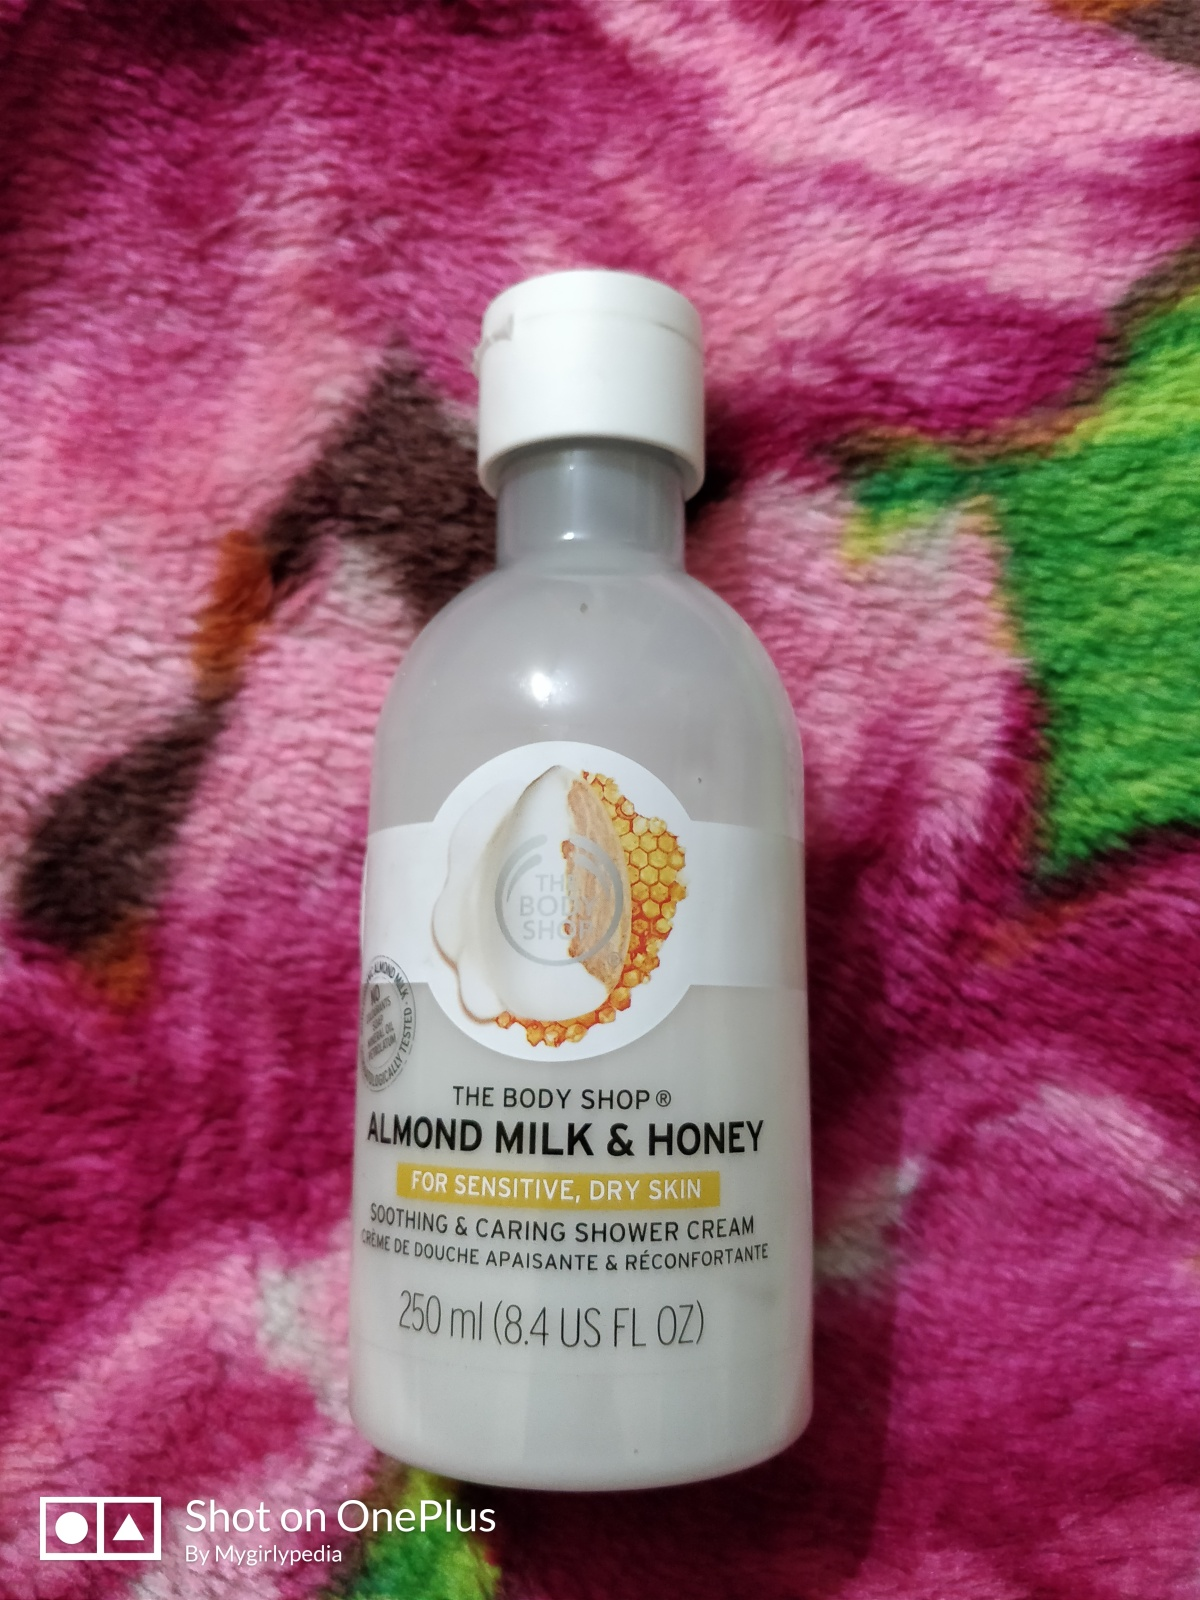 Is Almond, Milk and Honey Shower Cream from The Body Shop A Best Pick???